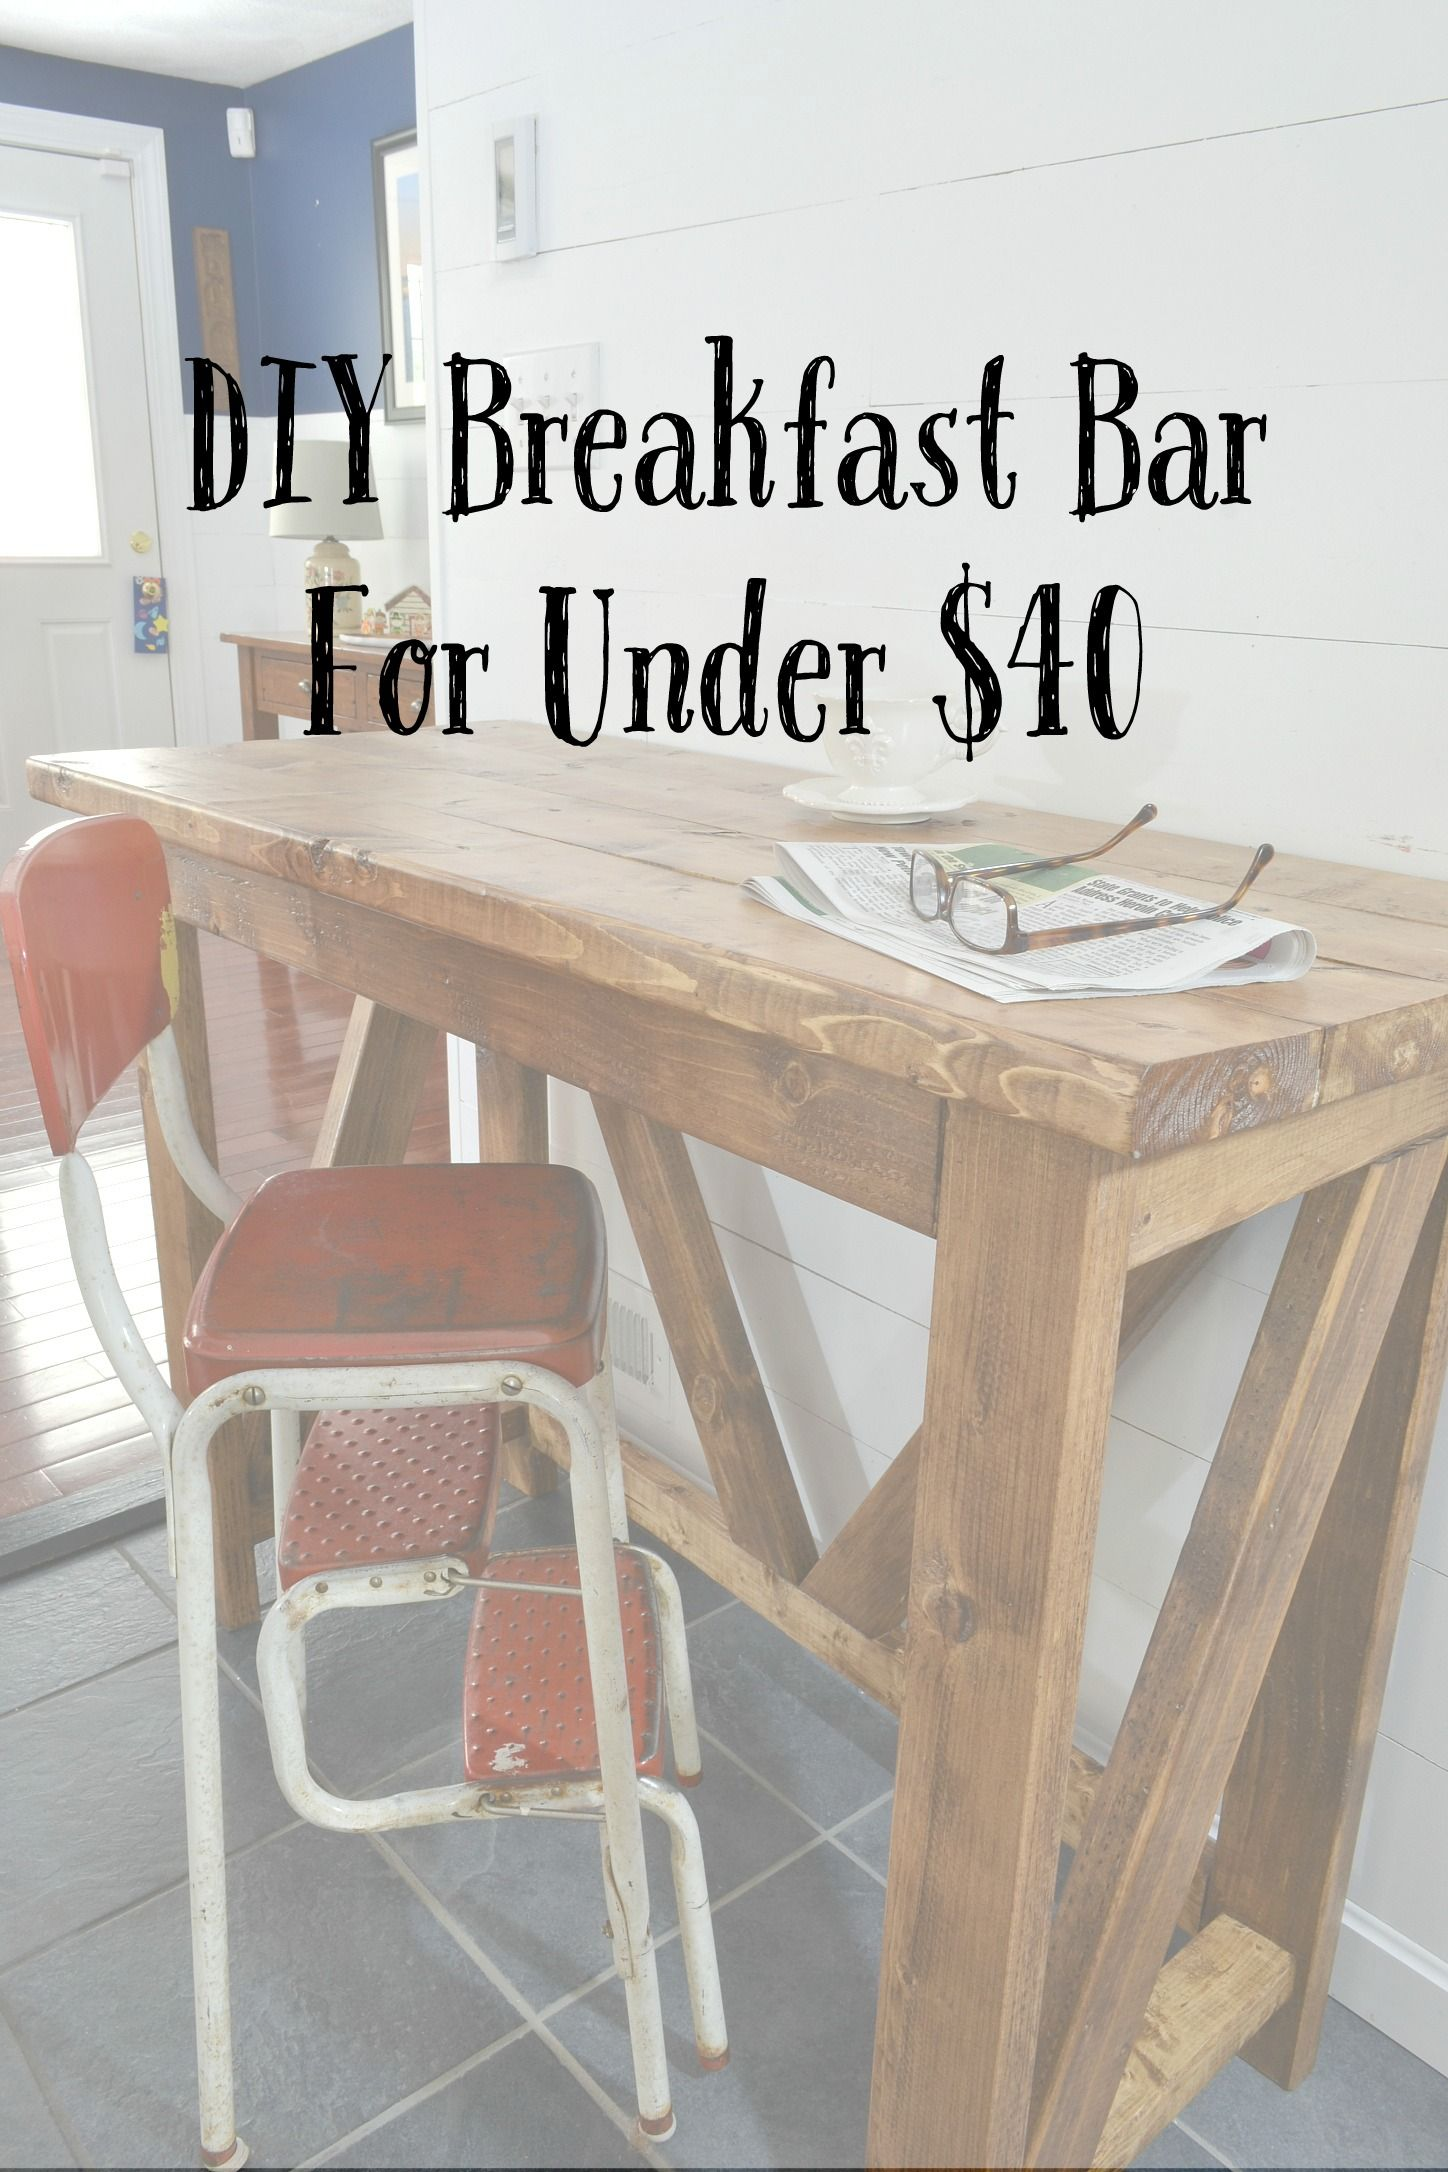 A Great How To For An Inexpensive Diy Breakfast Bar To Suit Your Needs Not Those Of A Million People Buying Bar Table Diy Diy Breakfast Bar Breakfast Bar Table